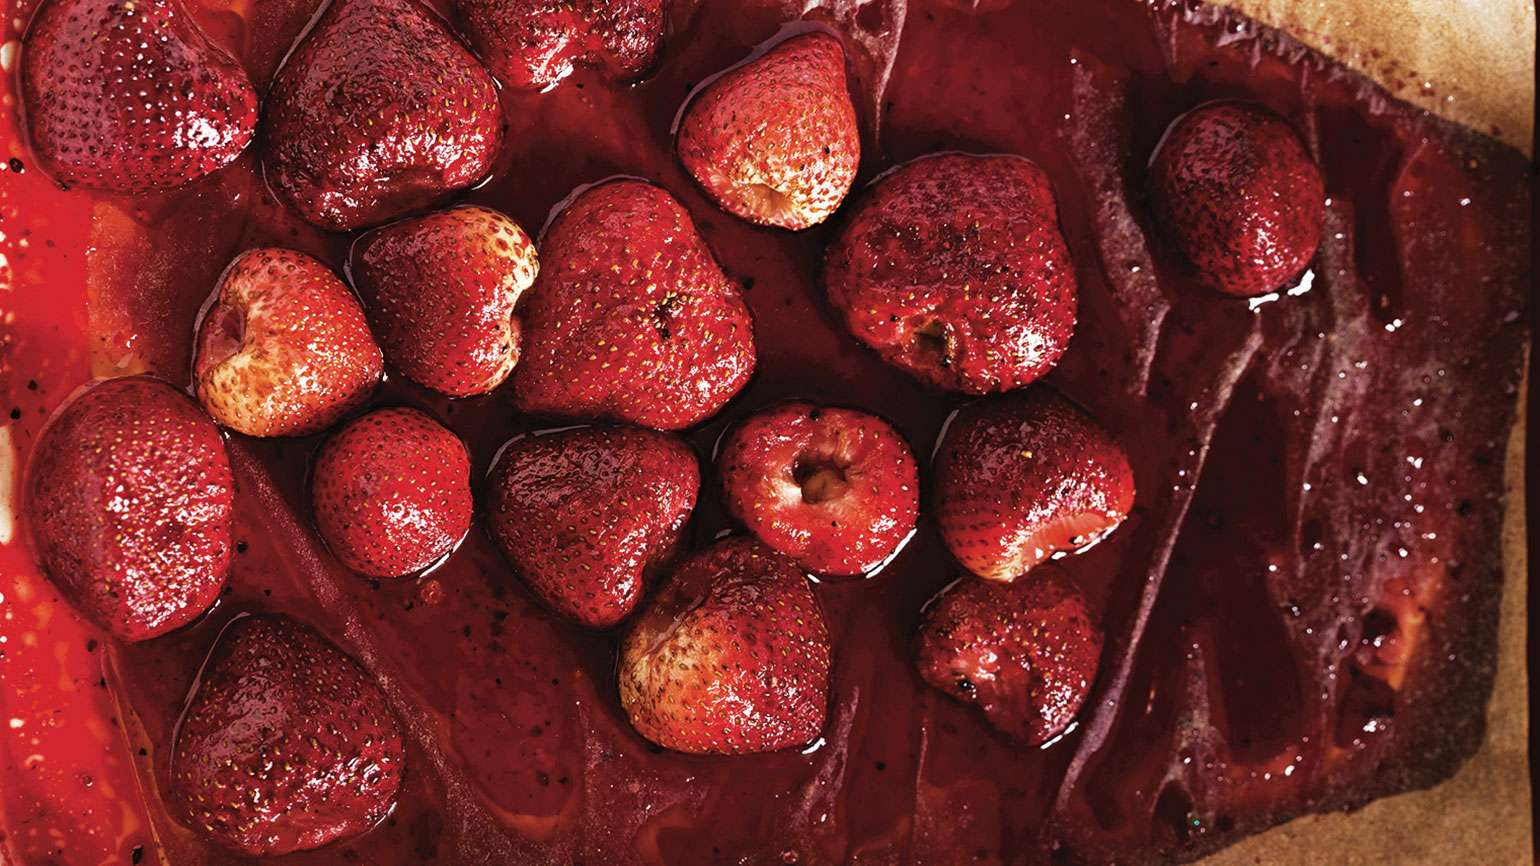 Rebecca Katz's Roasted Strawberries With Pomegranate Molasses